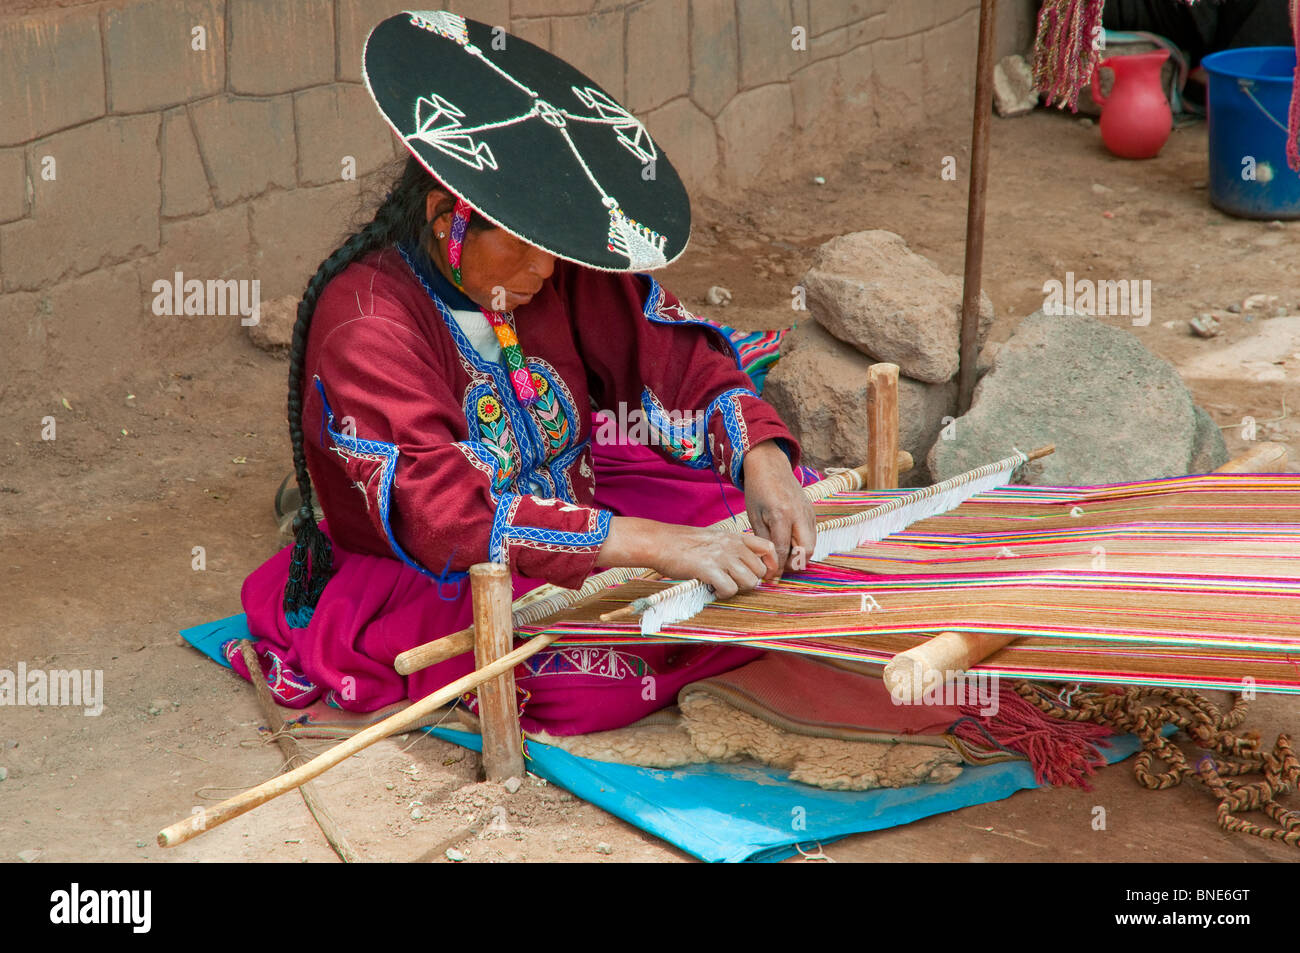 A peruvian woman in traditional dress weaving a blanket in the plaza in Racchi, Peru, South America. - Stock Image